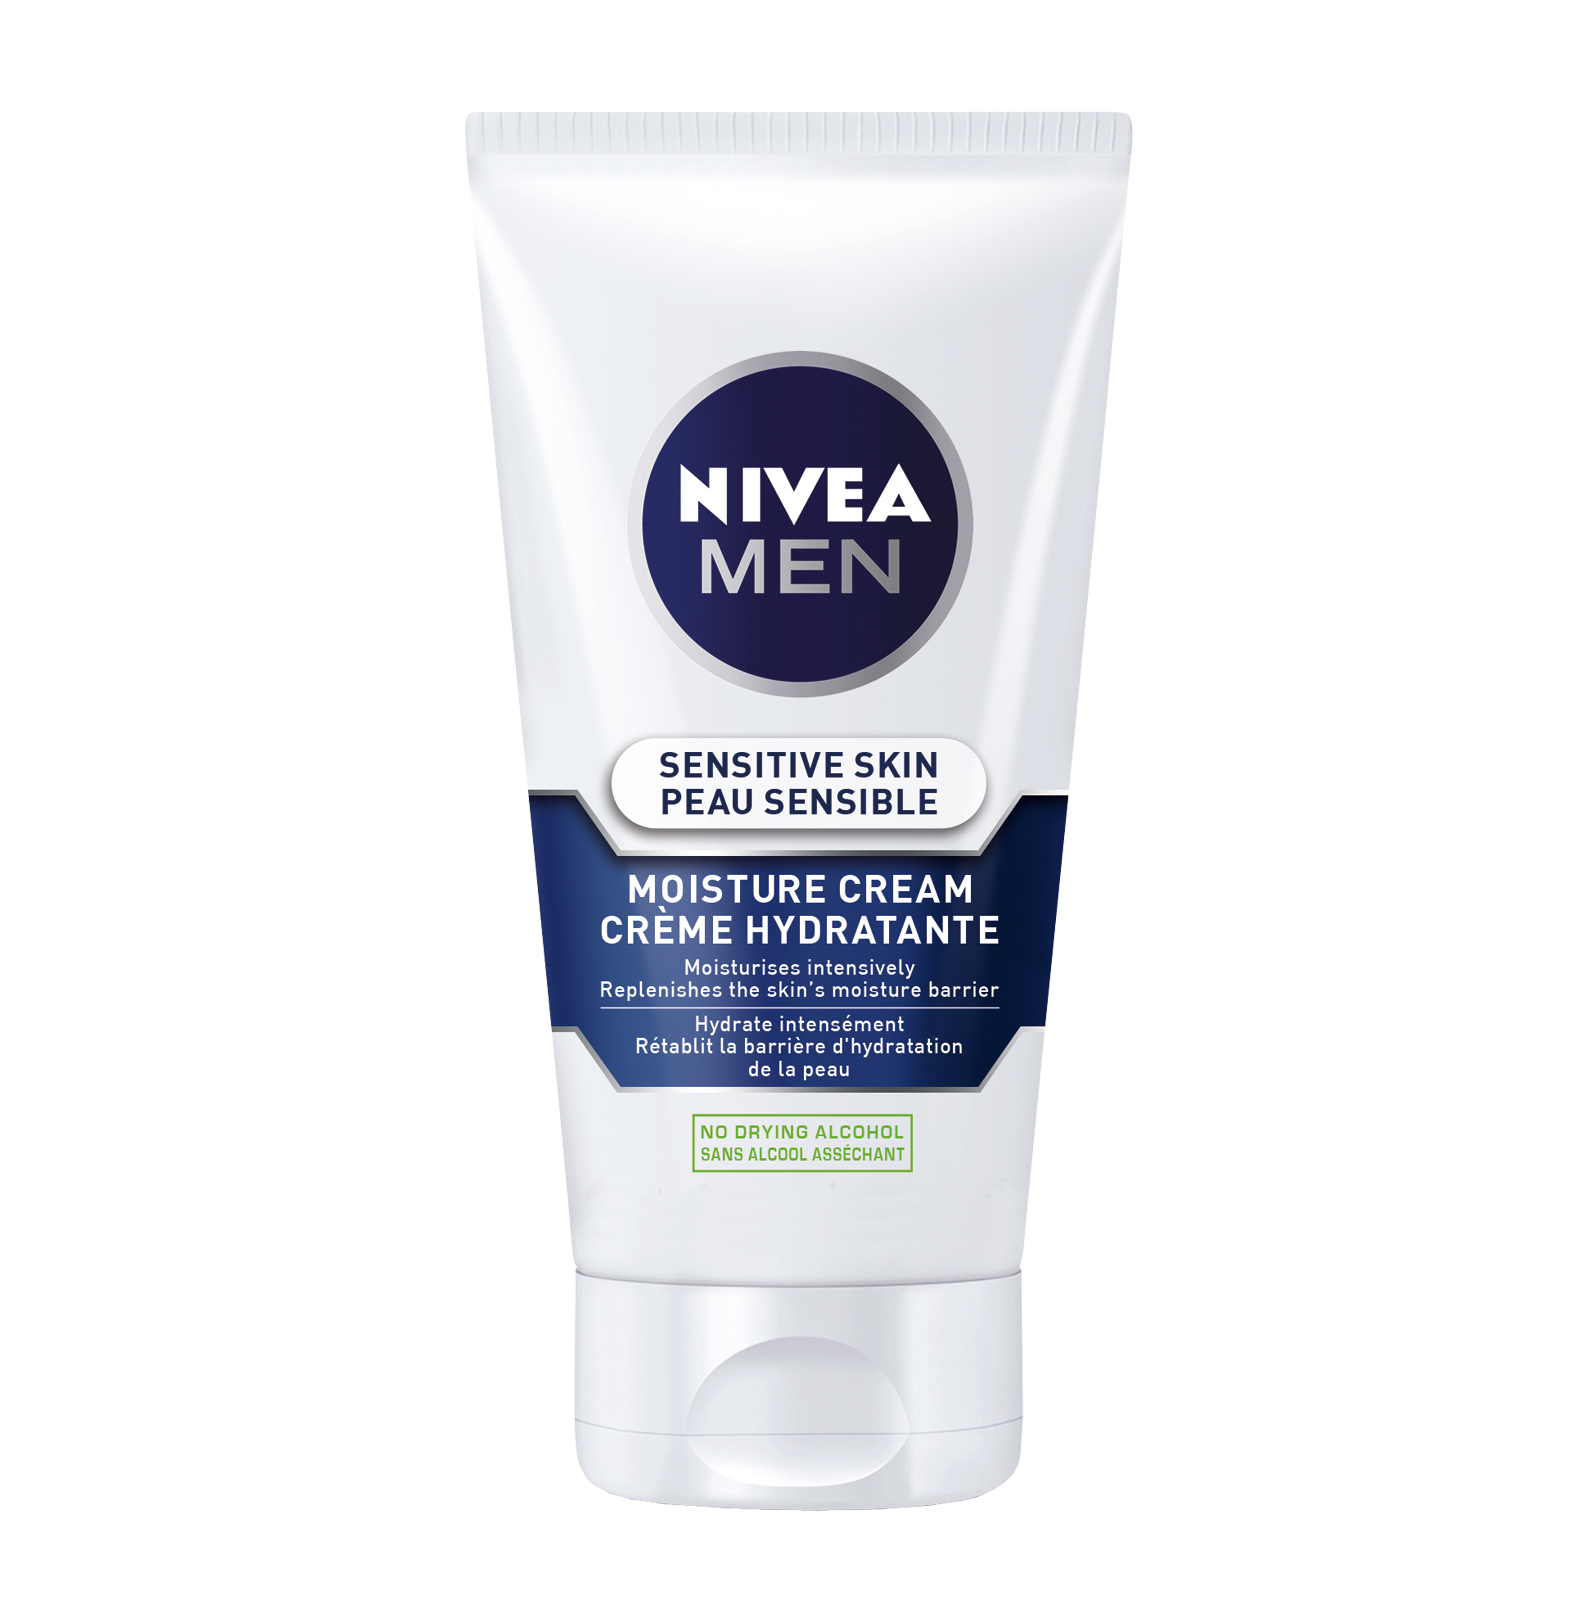 Nivea Men Sensitive Skin Moisture Cream 75mL